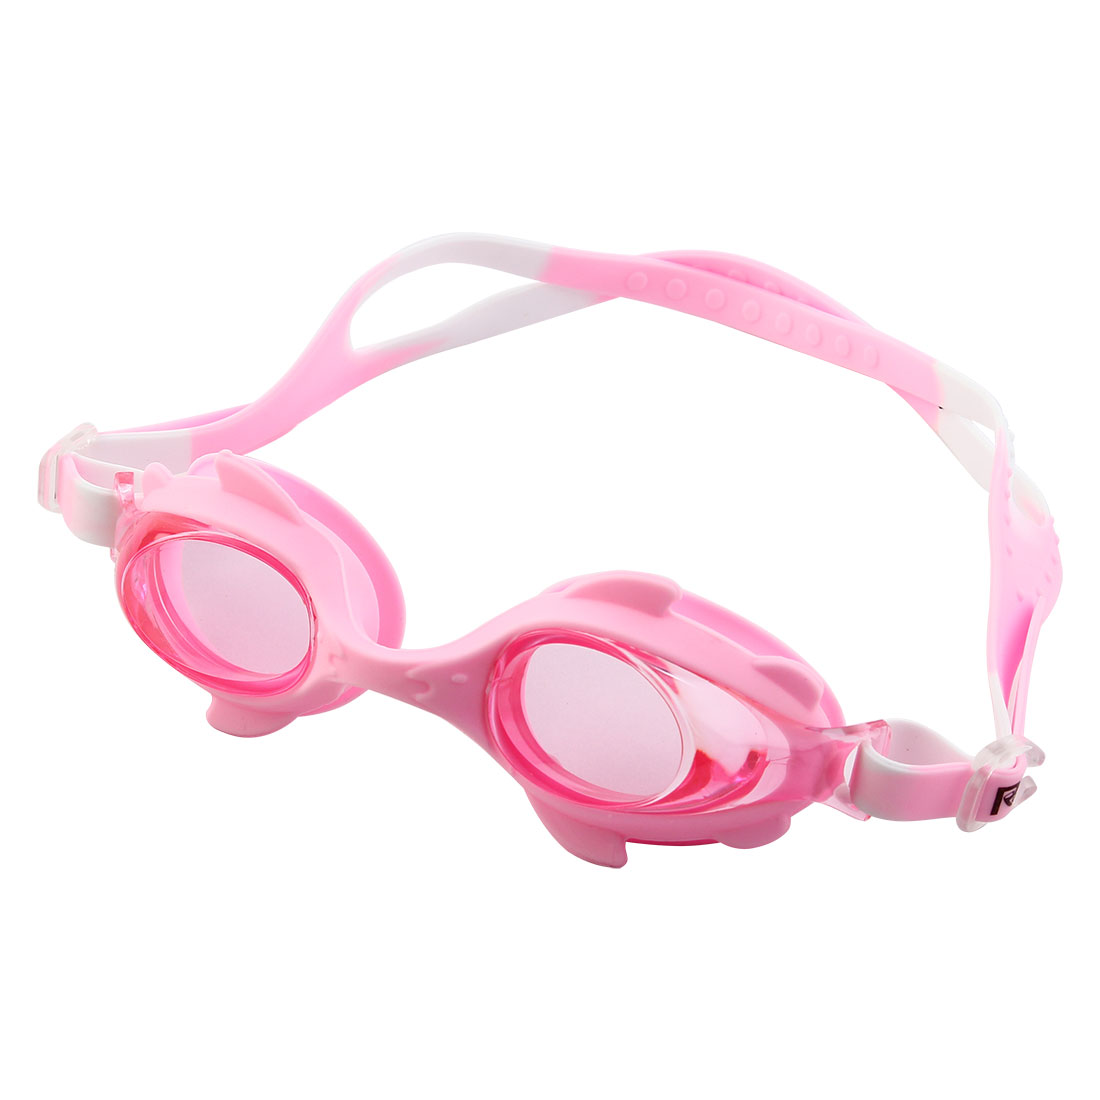 65330f5227 Clear Vision Anti Fog Adjustable Belt Swimming Goggles Glasses ...